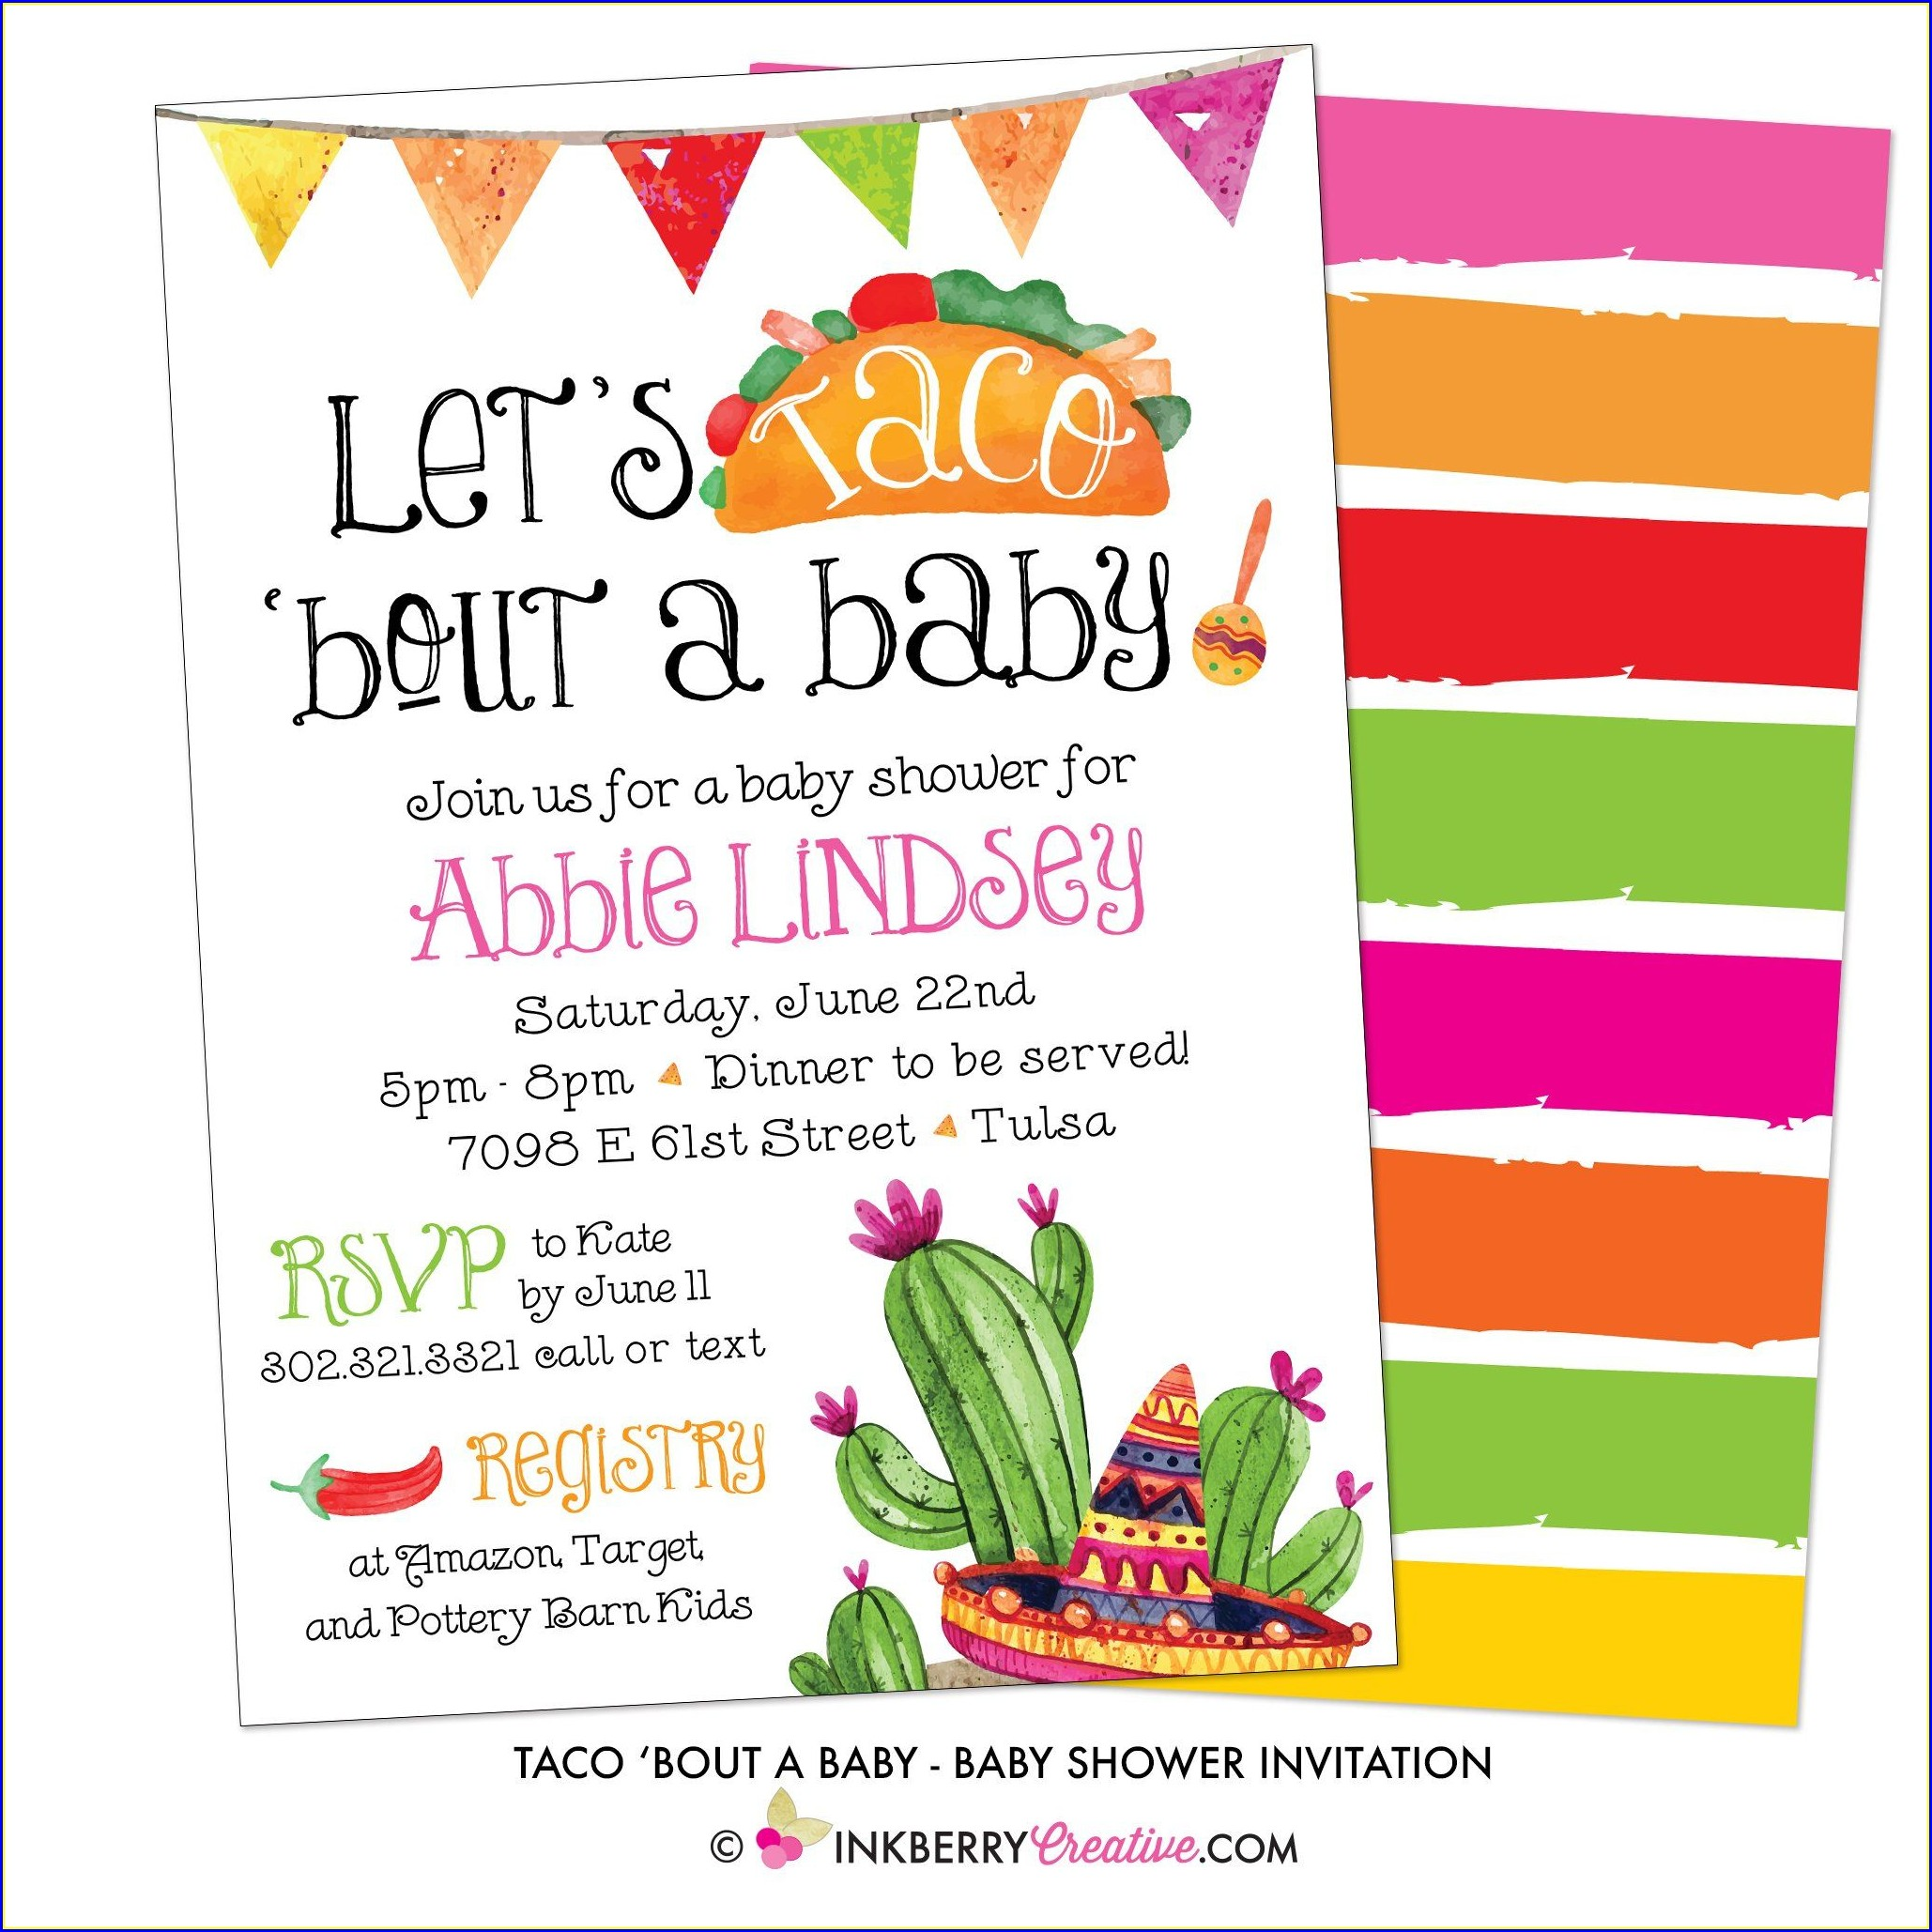 Lets Taco Bout A Baby Invitations